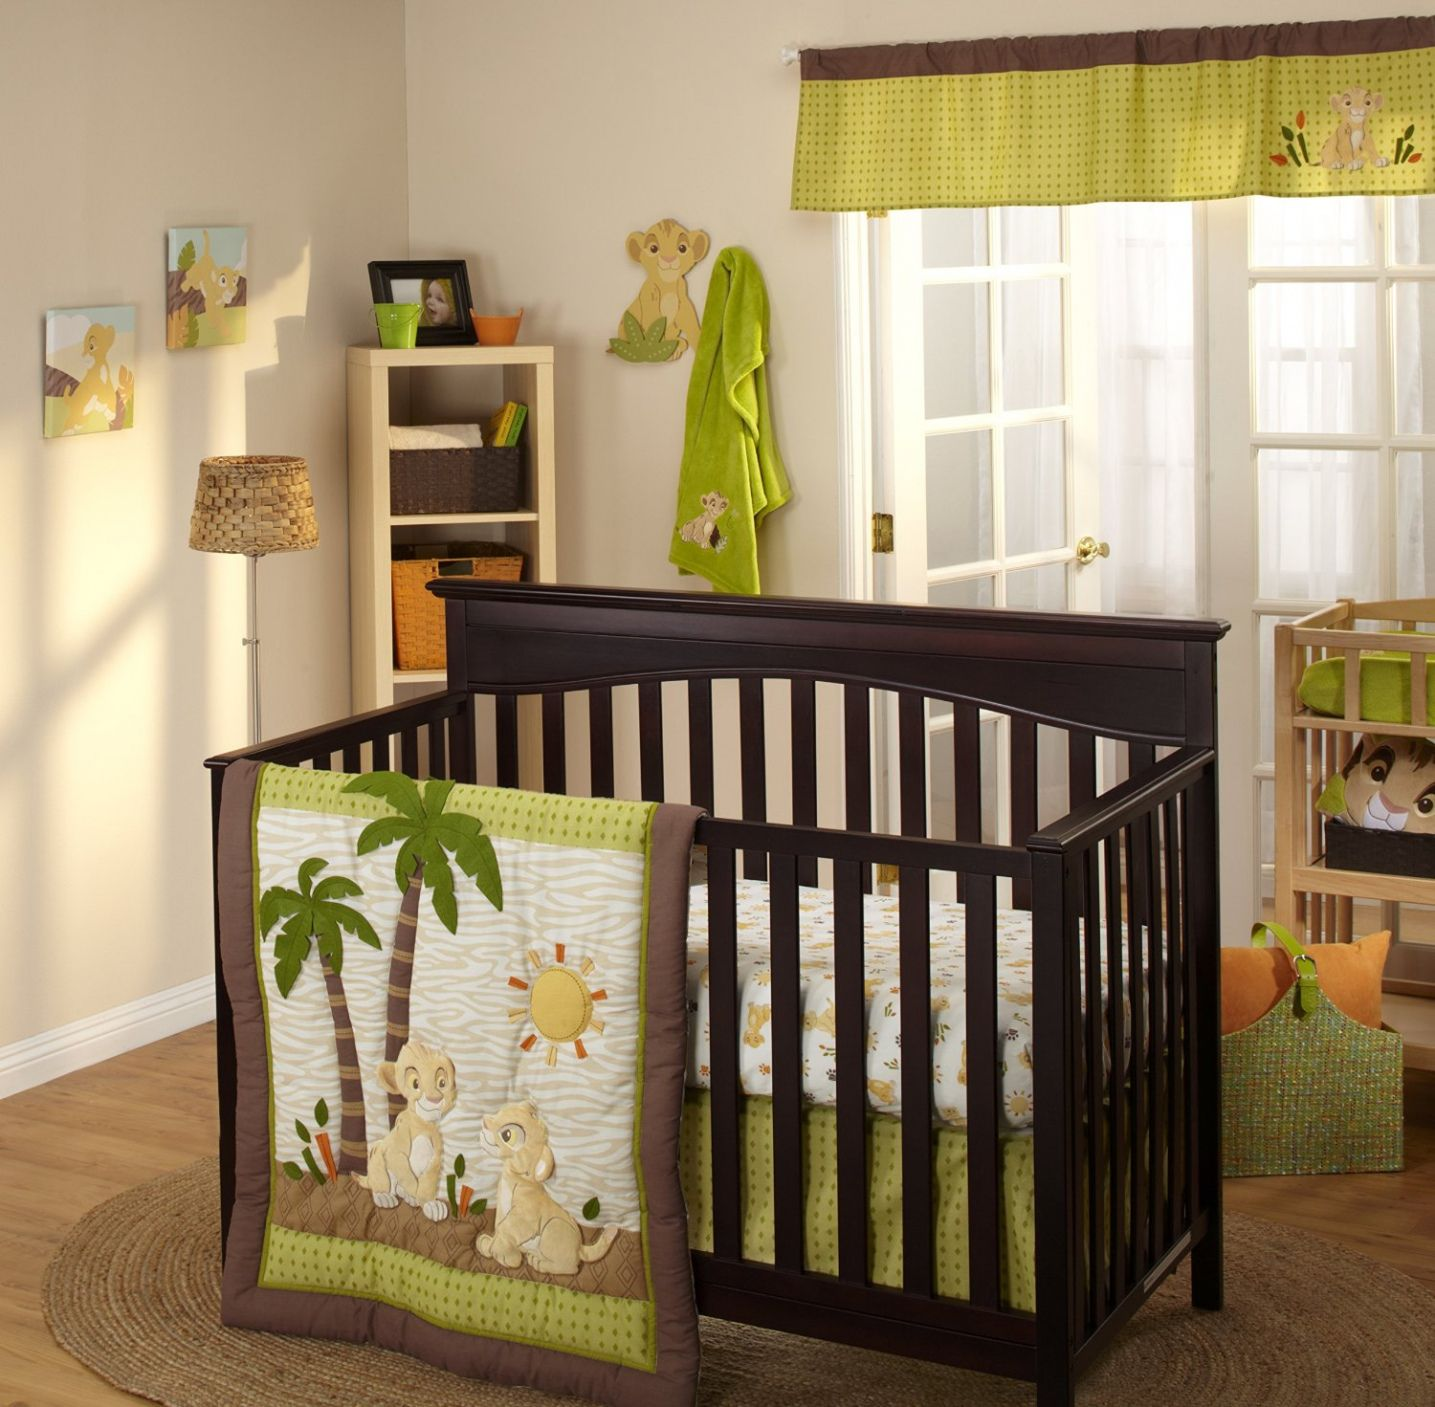 70 Lion King Baby Room Decor Cool Rustic Furniture Check More At Http